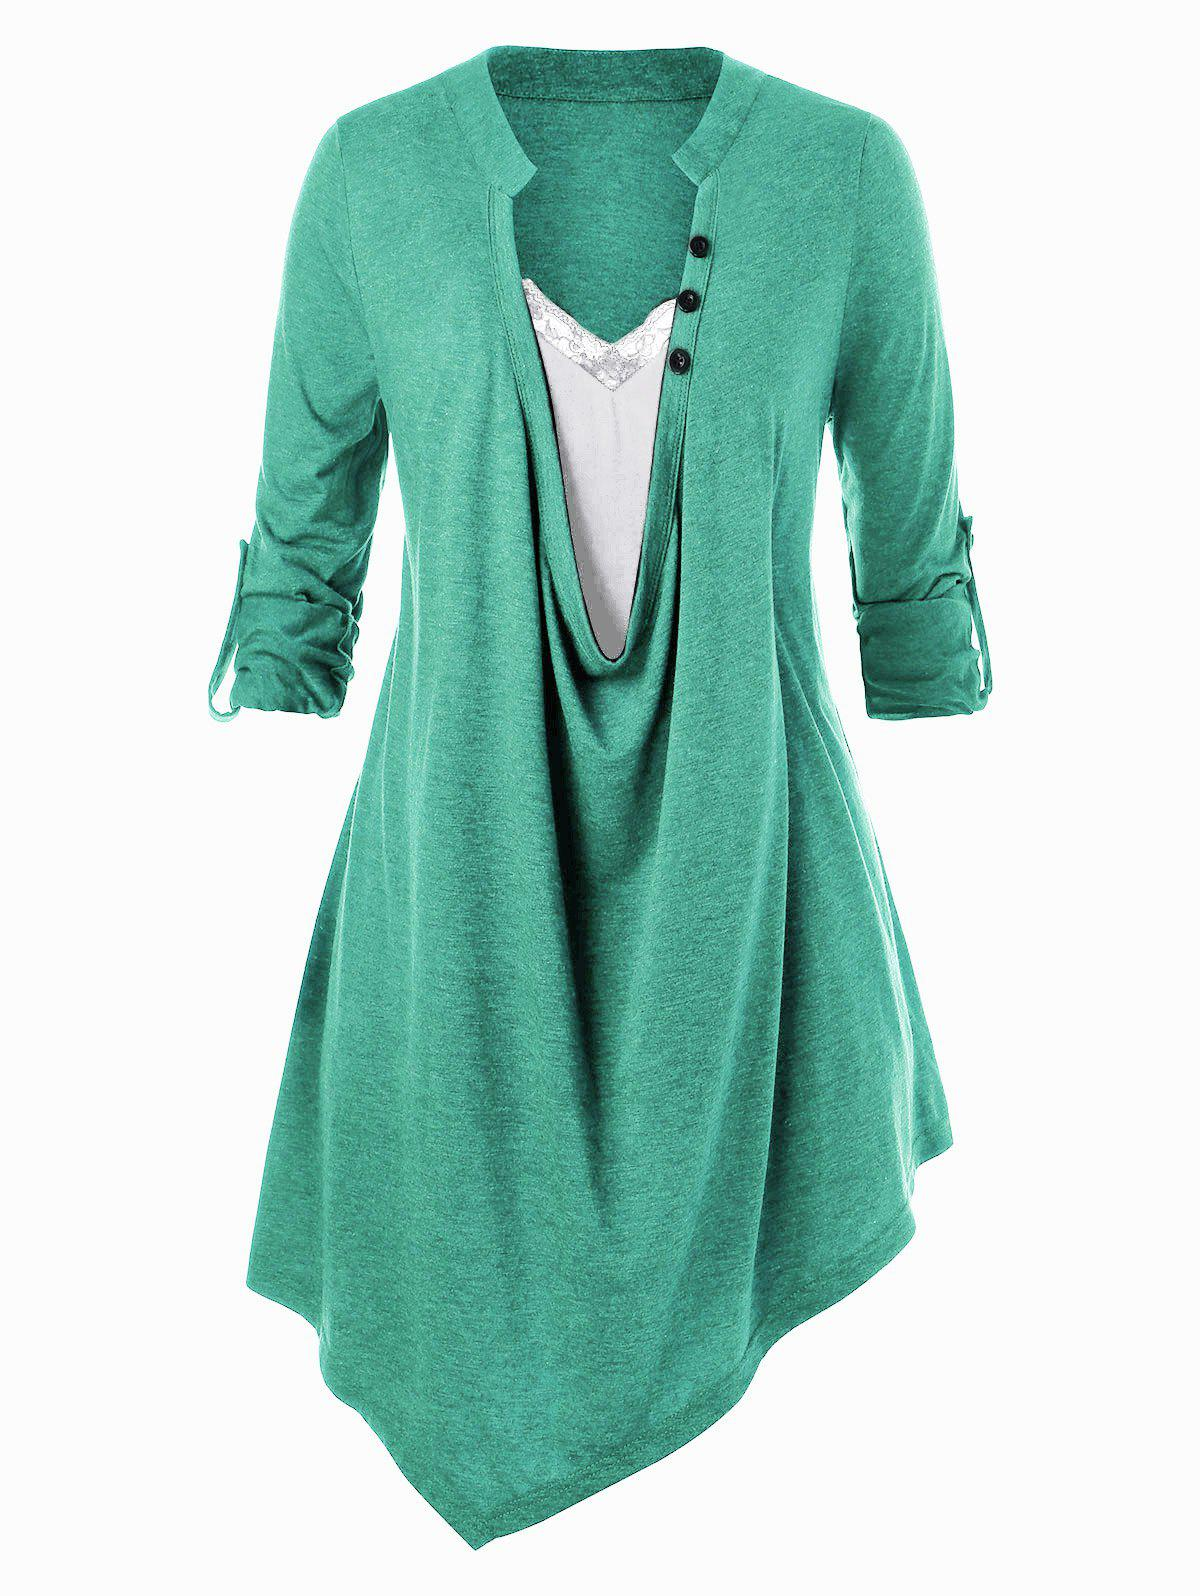 Plus Size Lace Panel Asymmetric Top - MACAW BLUE GREEN L